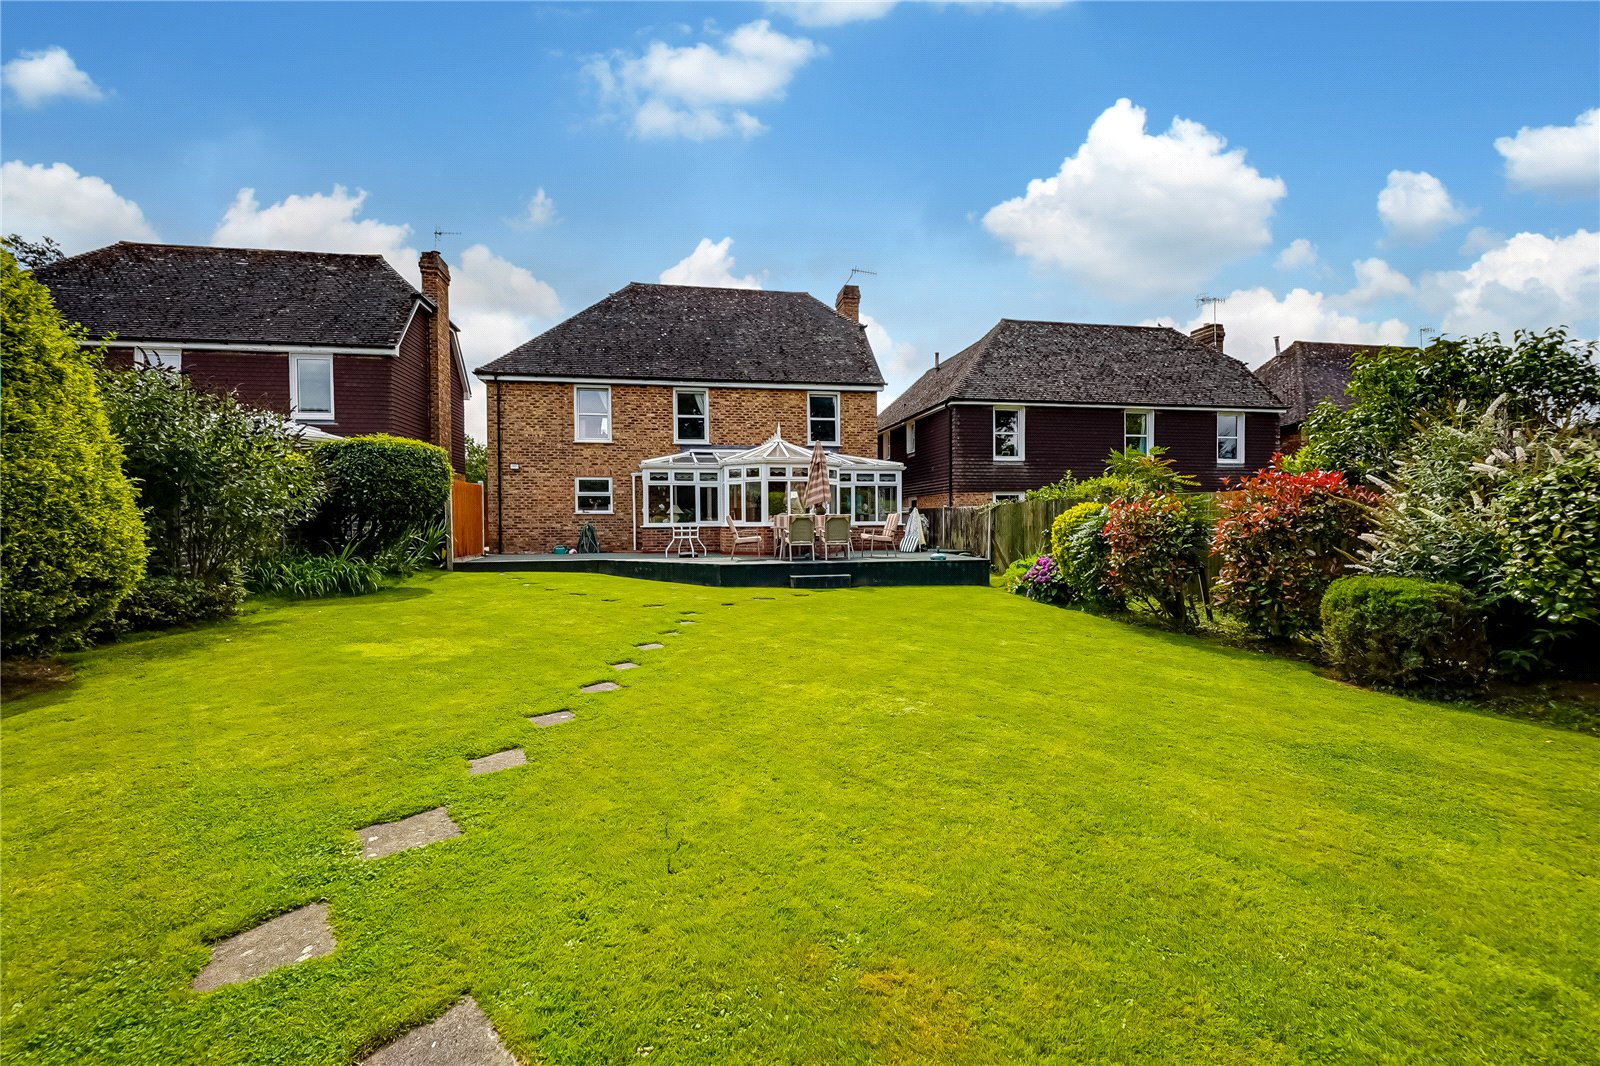 5 bed house for sale in West Street, Hunton  - Property Image 2